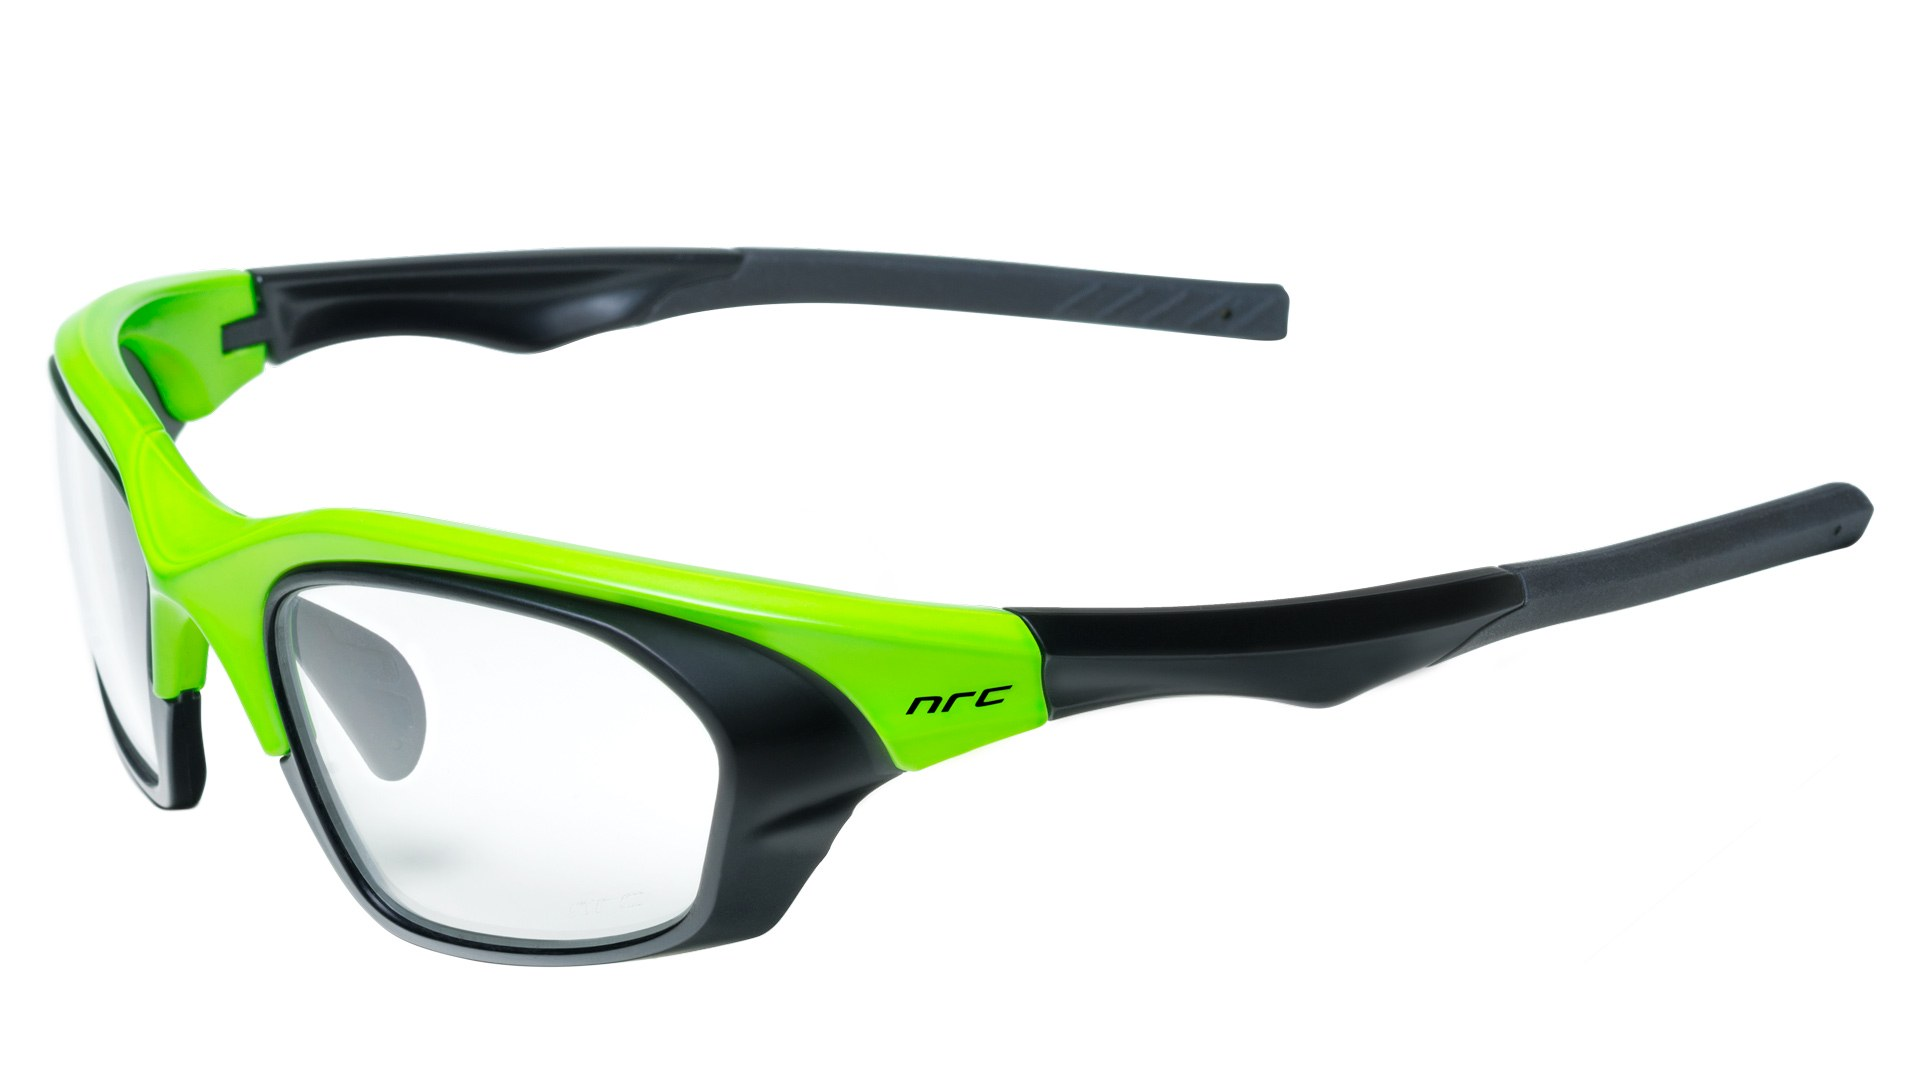 OCCHIALI NRC S5 SPORT SUNGLASSES GD WITH OSS.jpg